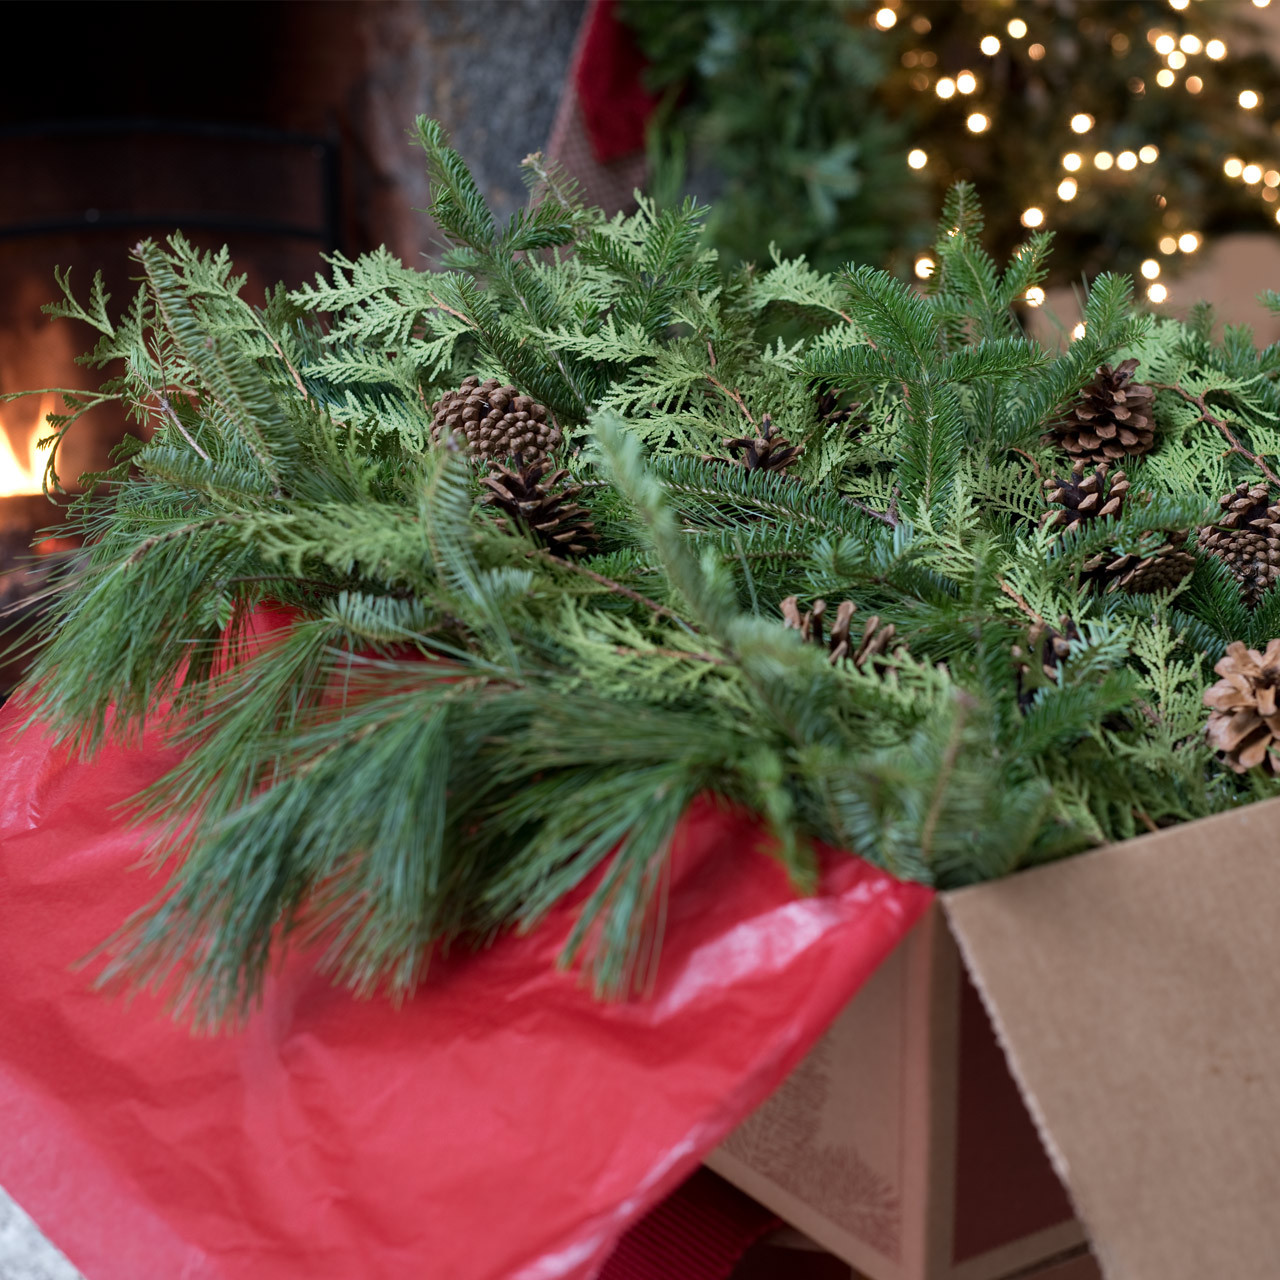 Big Box of Greens Christmas Decorations